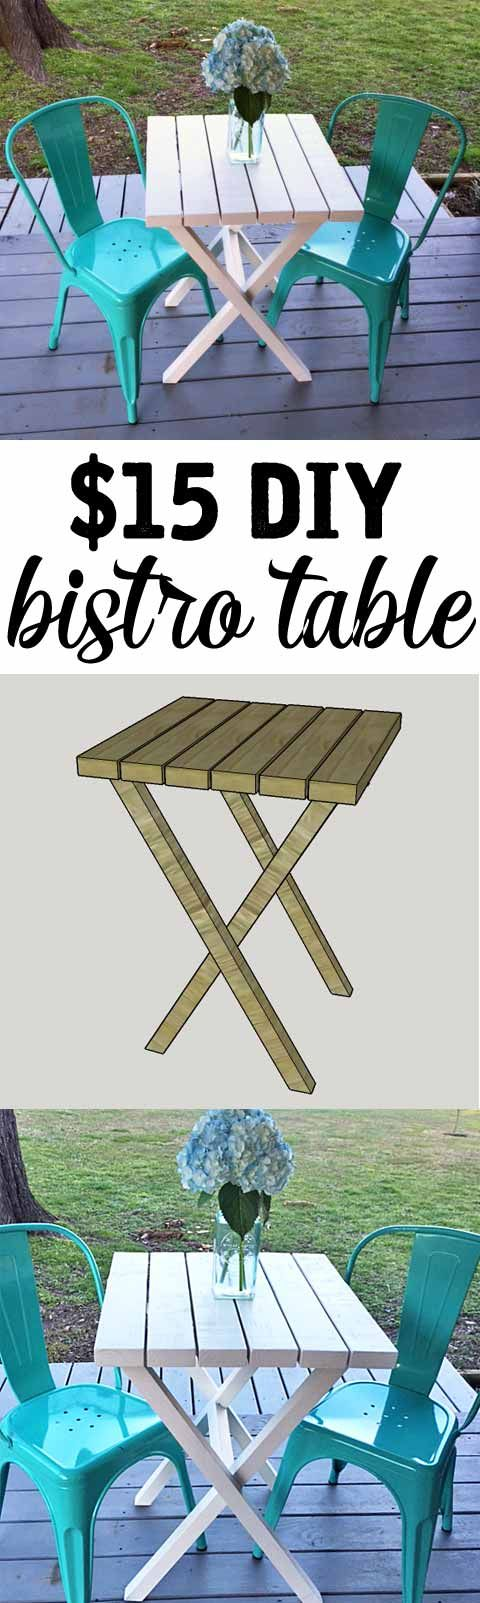 $15 DIY Bistro Table - made from 2x4s. Such an easy project for a beginner - only takes about an hour!